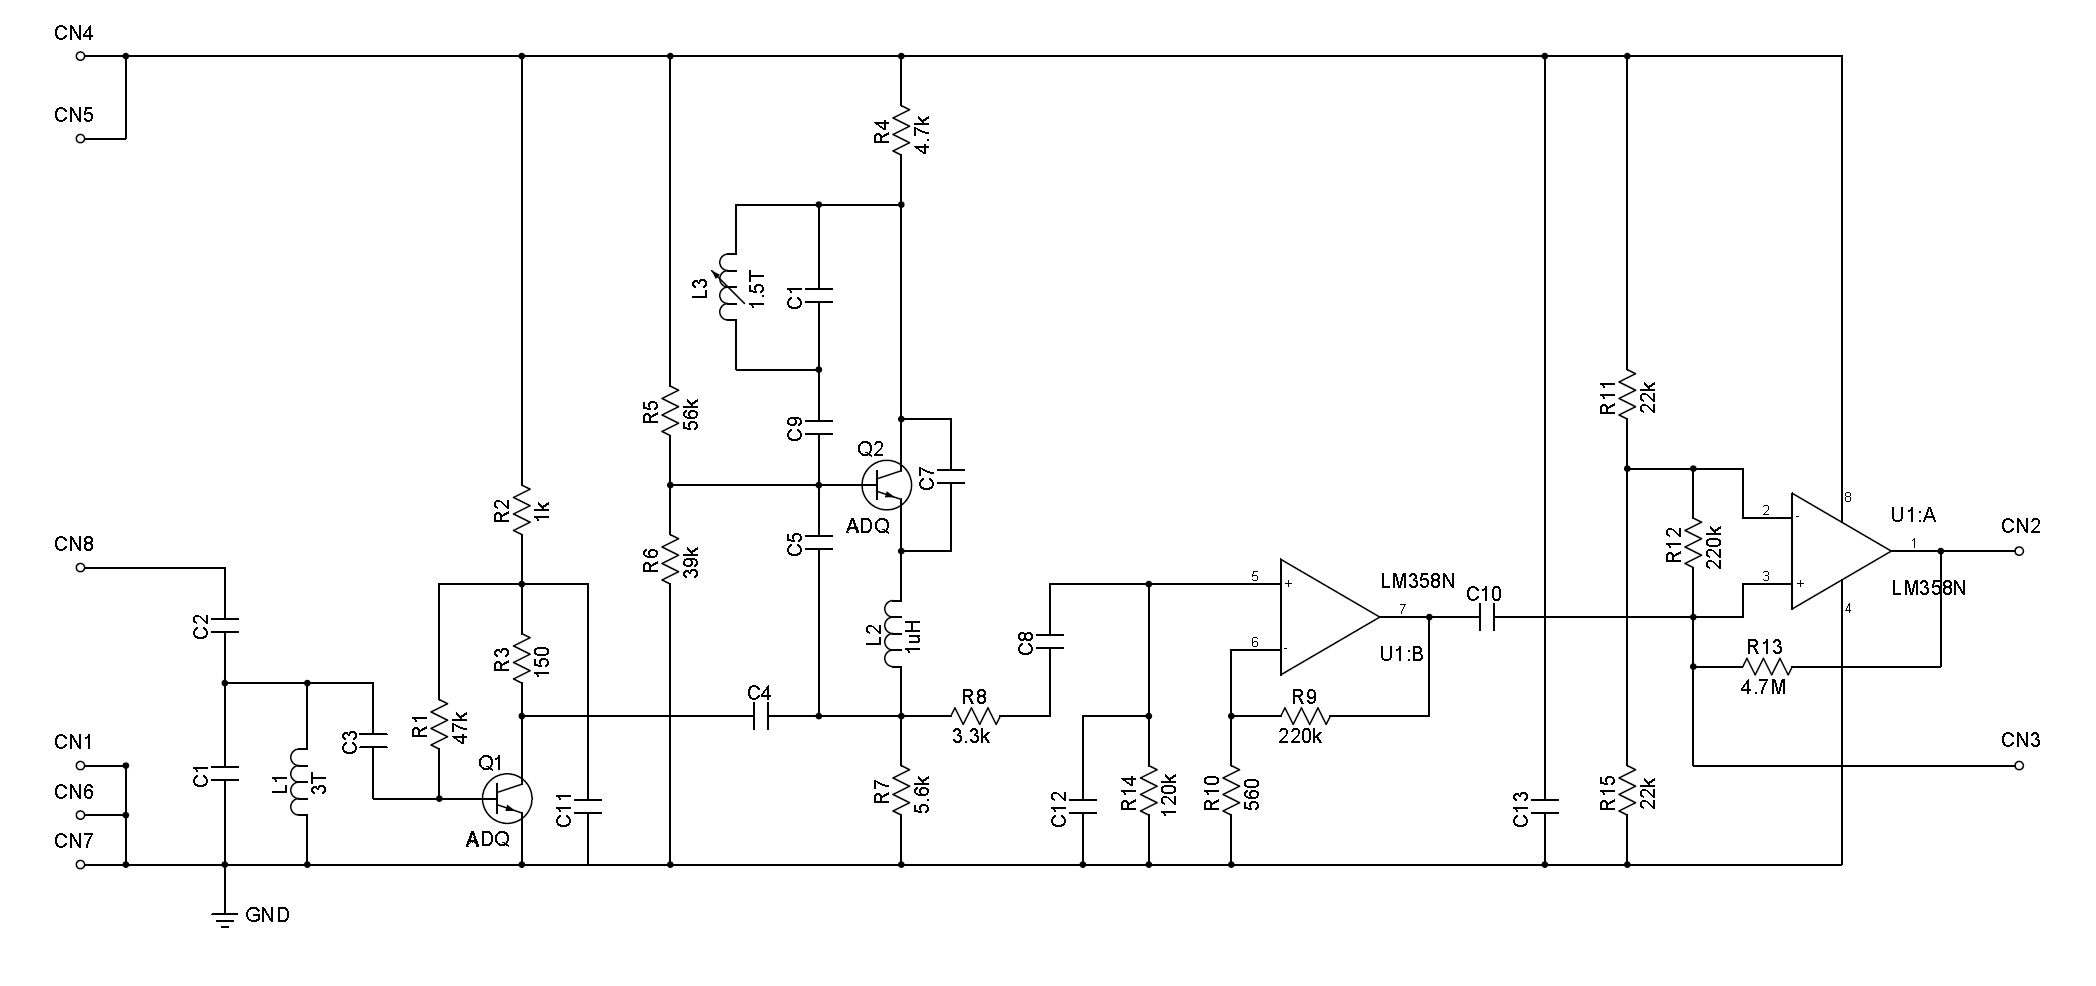 Infrared Emitter Wiring Diagram Library Reflectivesensor Sensorcircuit Circuit Seekiccom A Schematic For 434mhz Rf Receiver Module